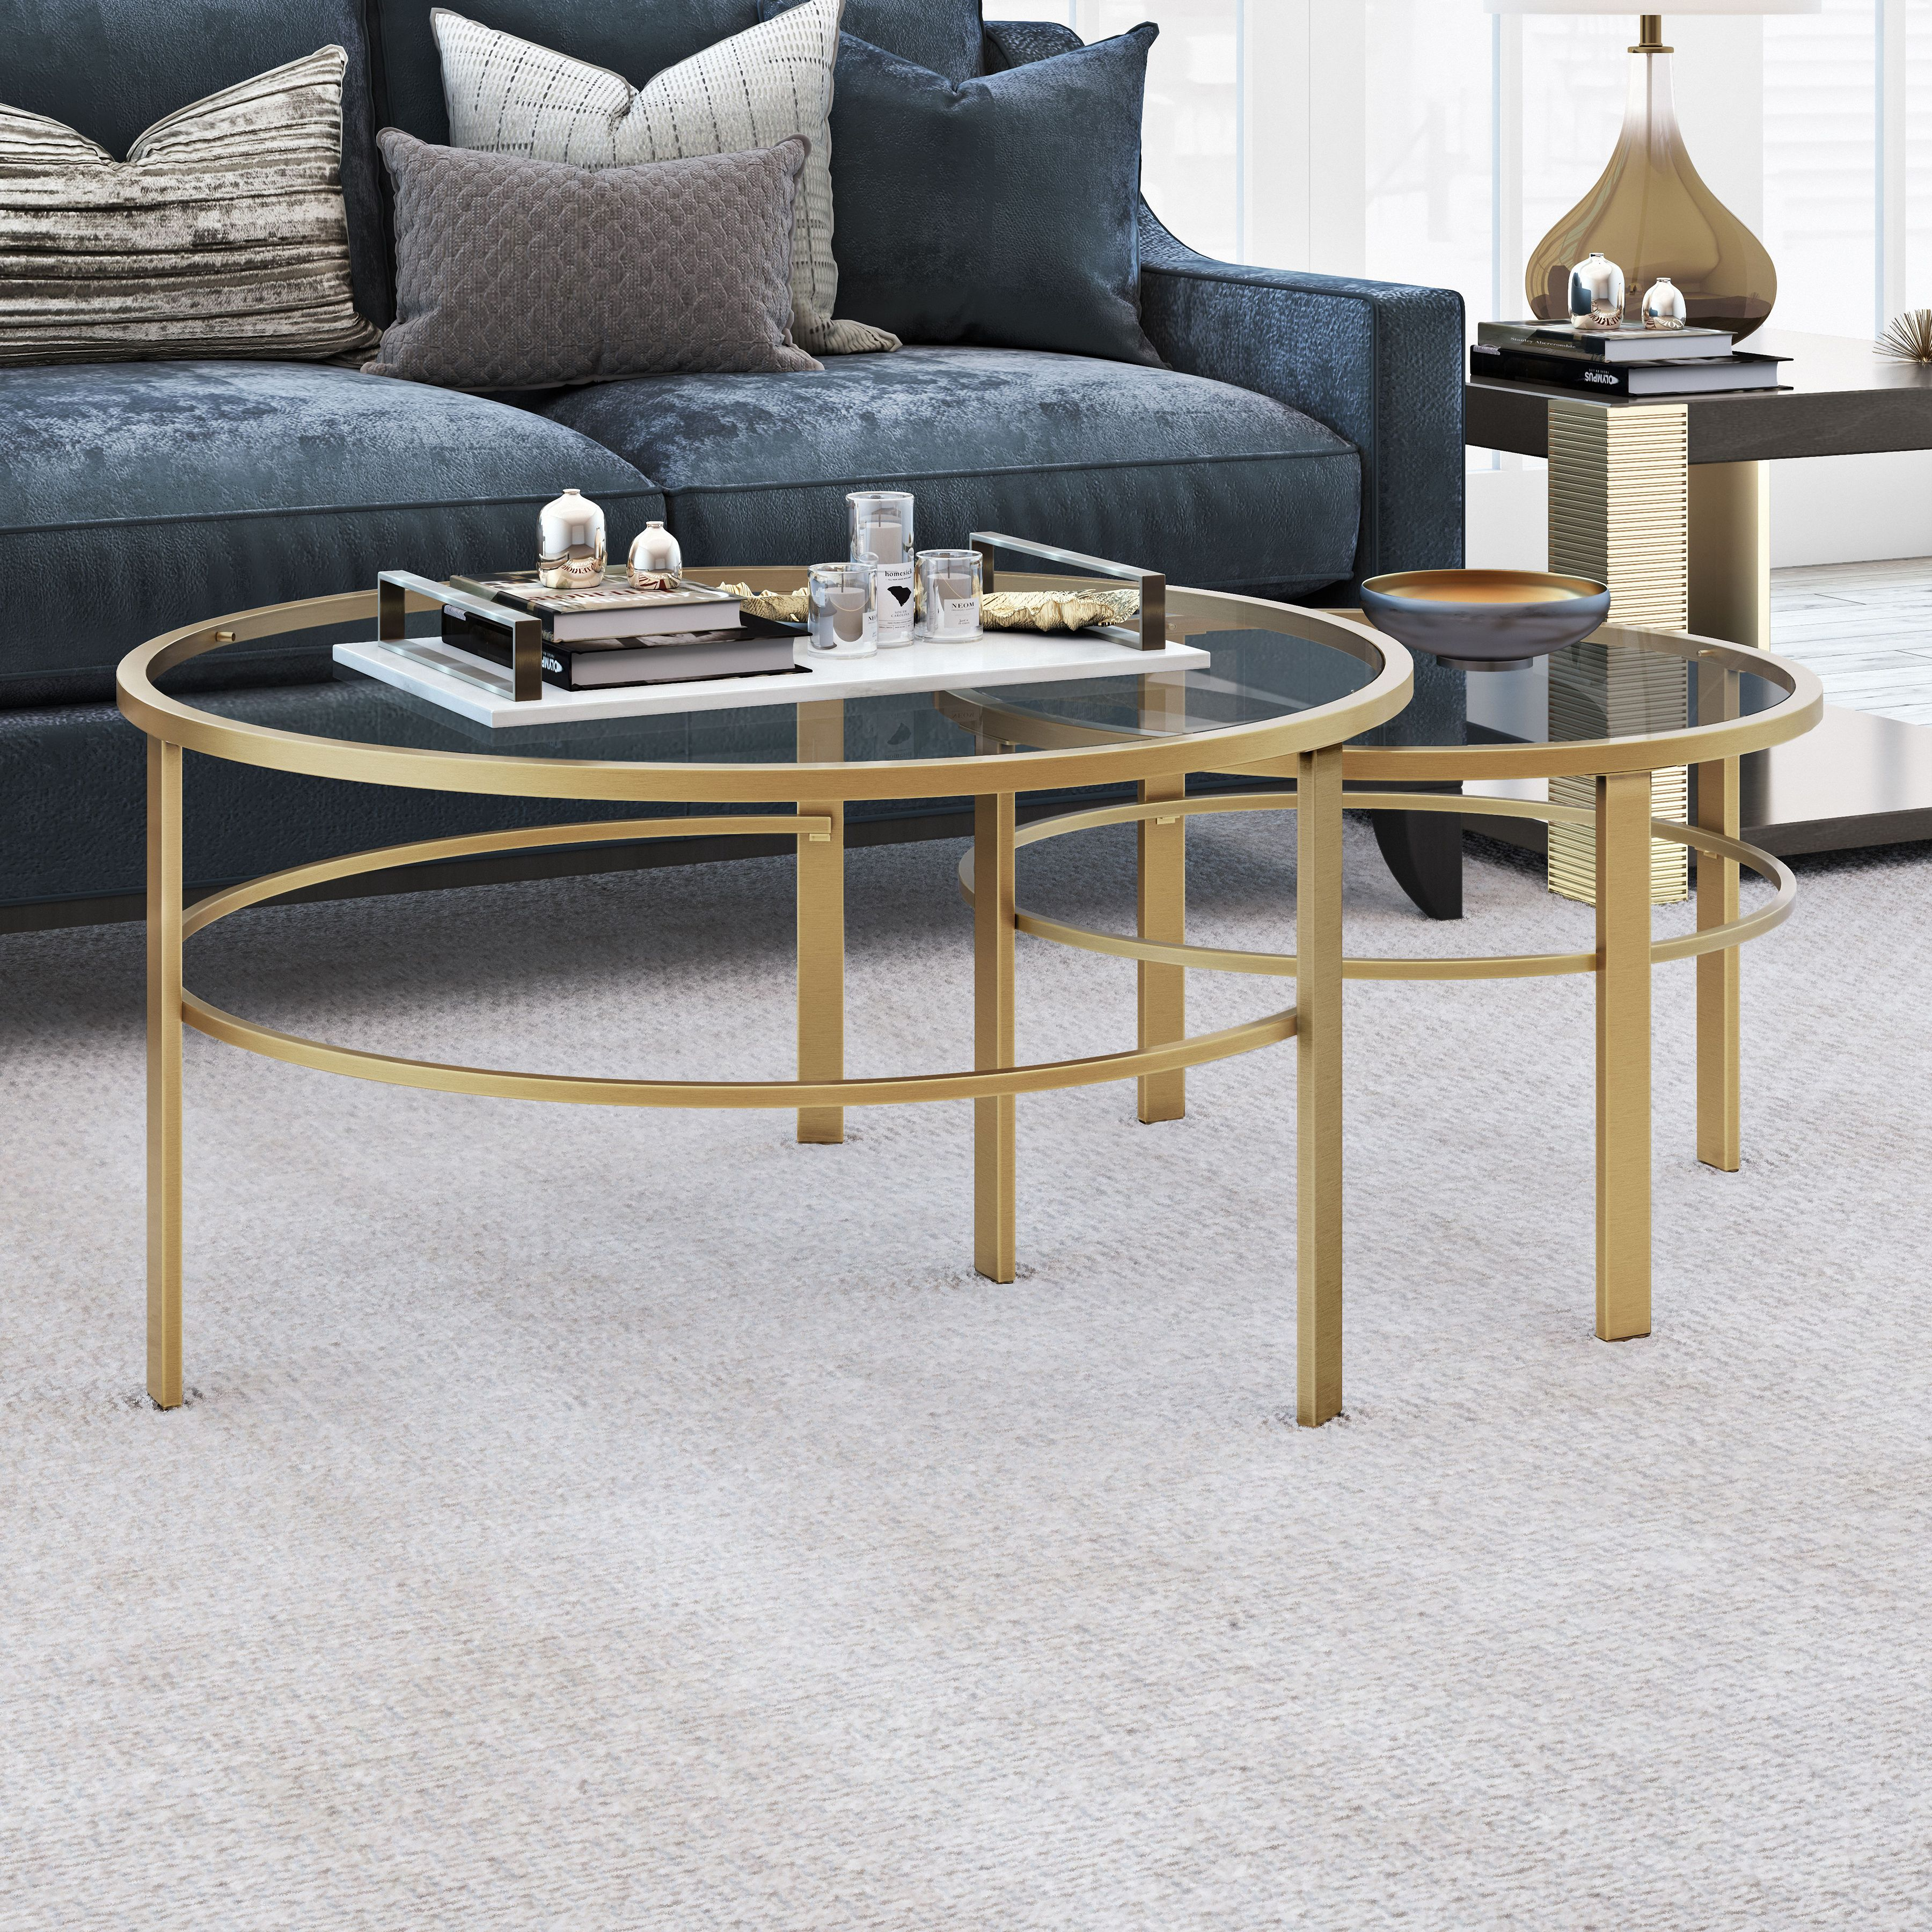 Evelyn Zoe Contemporary Nesting Coffee Table Set With Glass Top Walmart Com Round Nesting Coffee Tables Nesting Coffee Tables Round Glass Coffee Table [ 3600 x 3600 Pixel ]